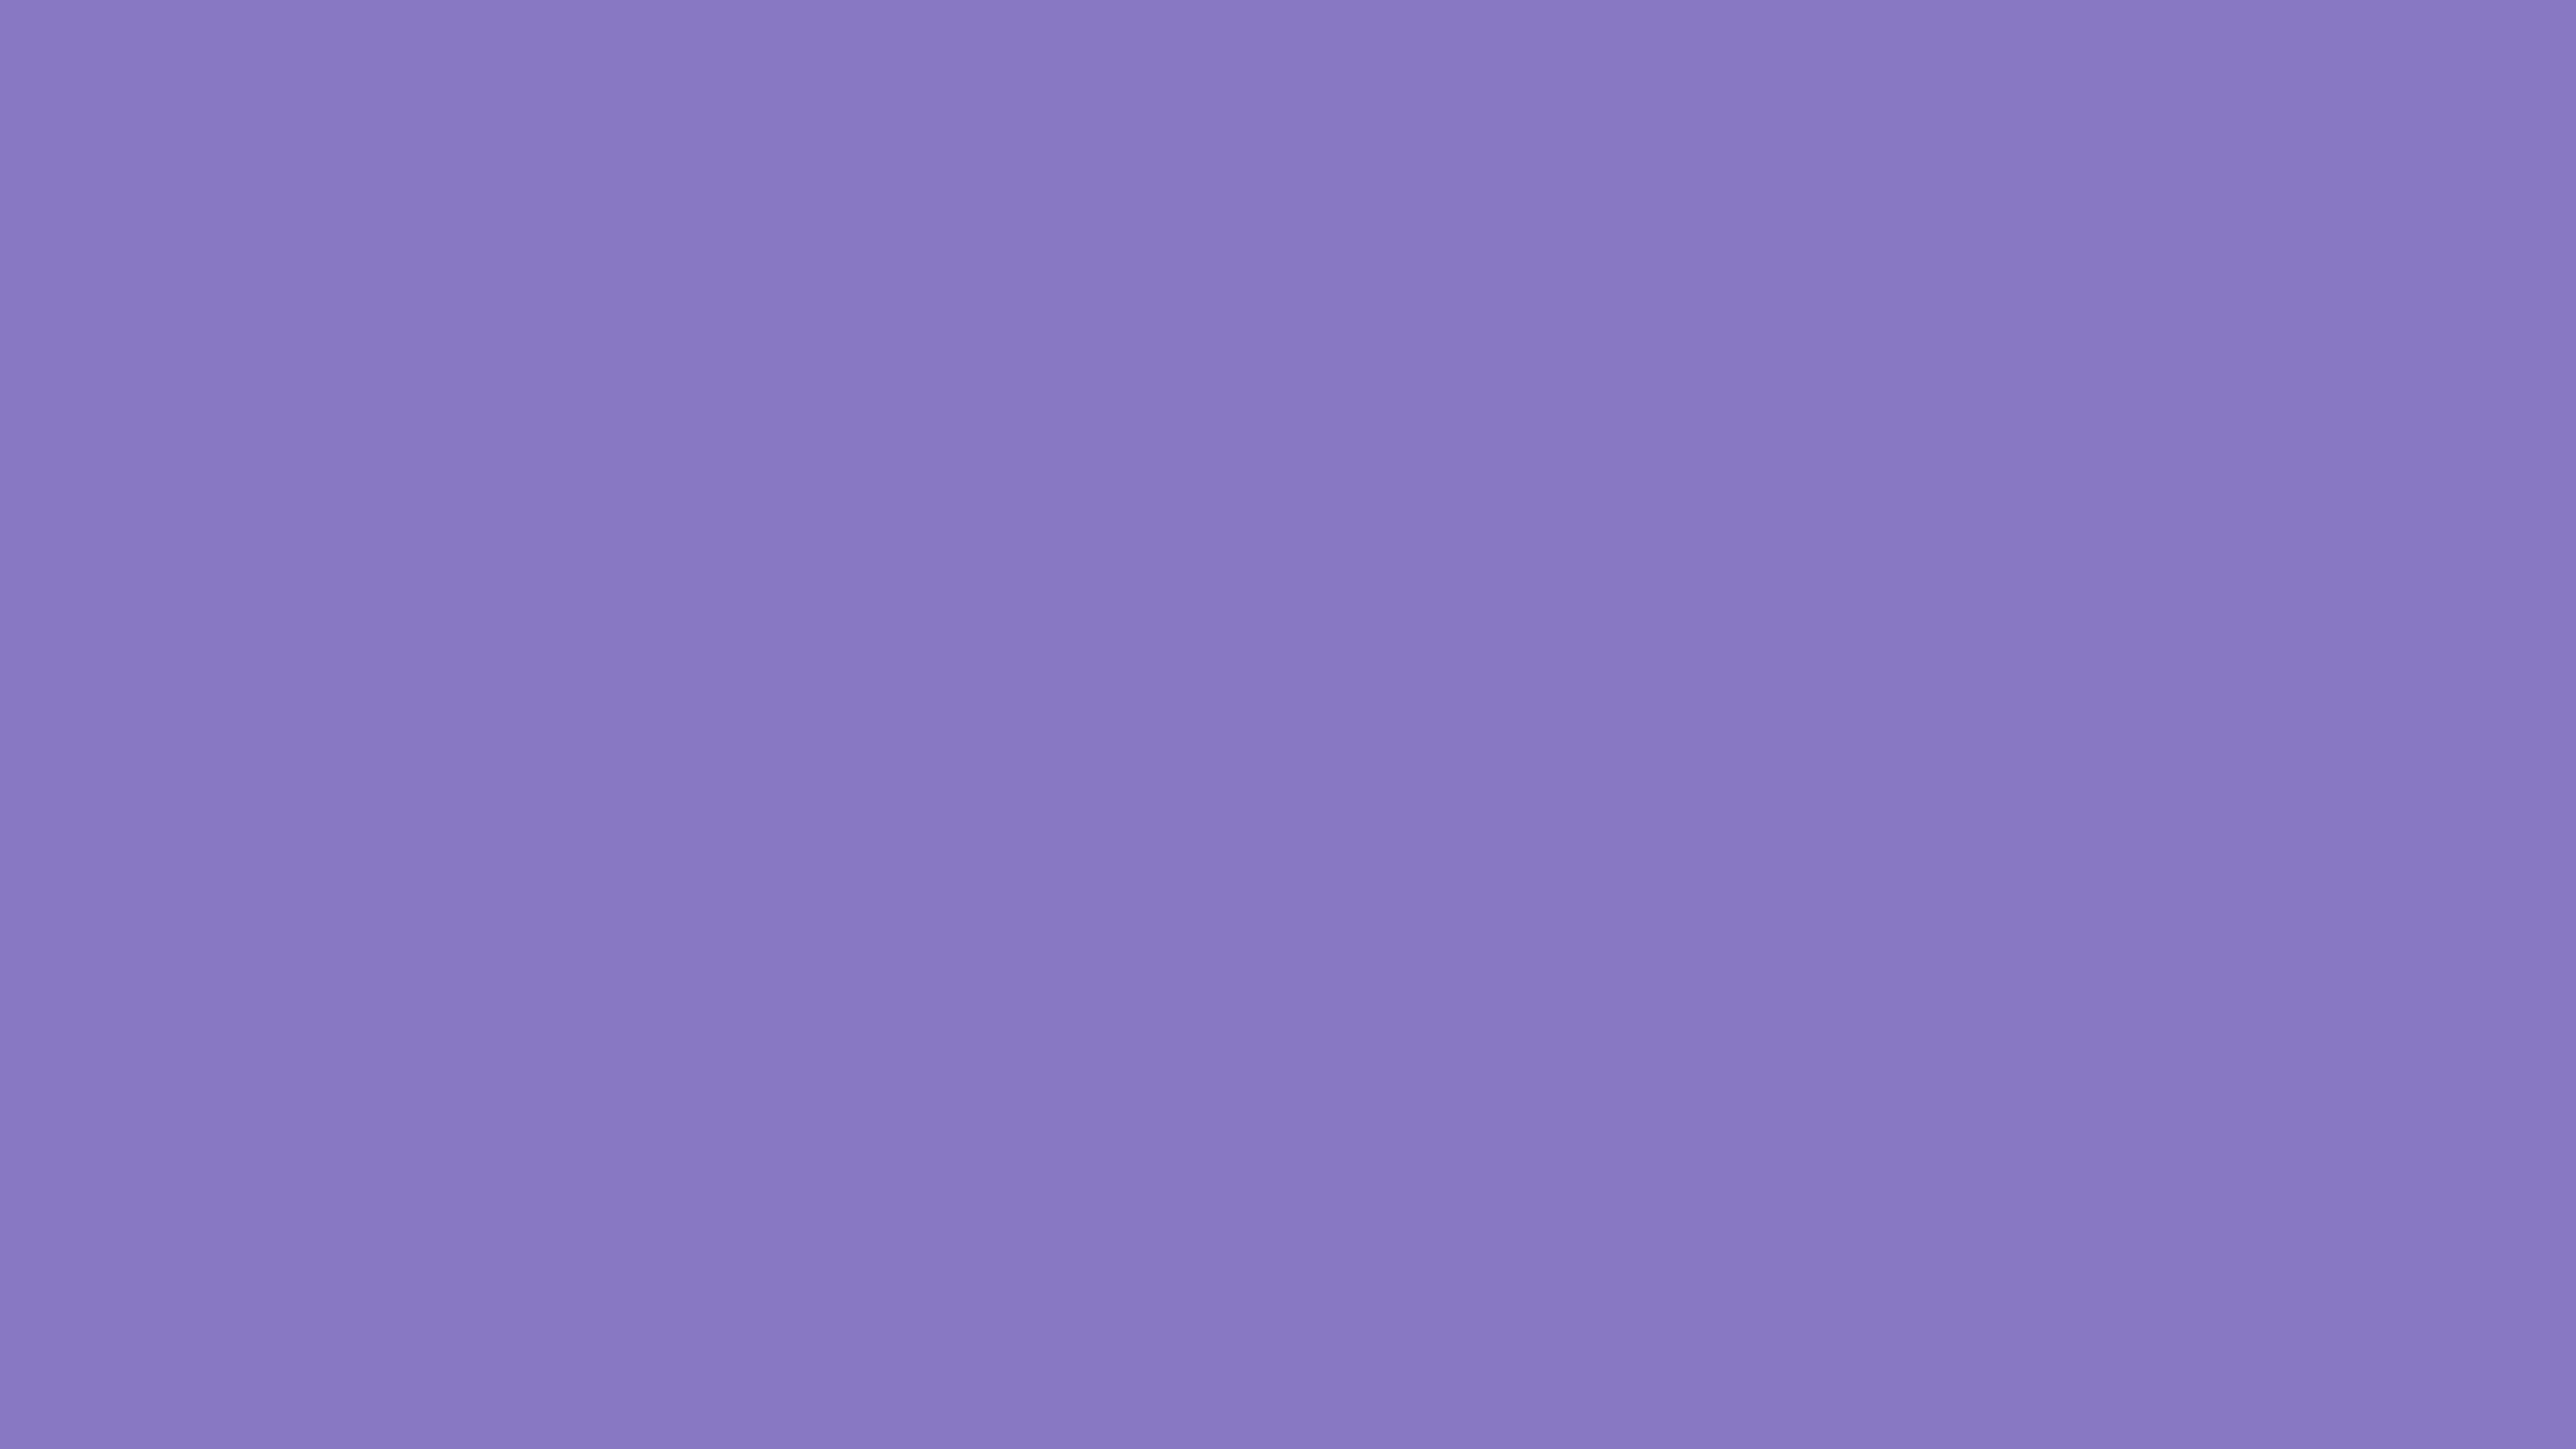 4096x2304 Ube Solid Color Background